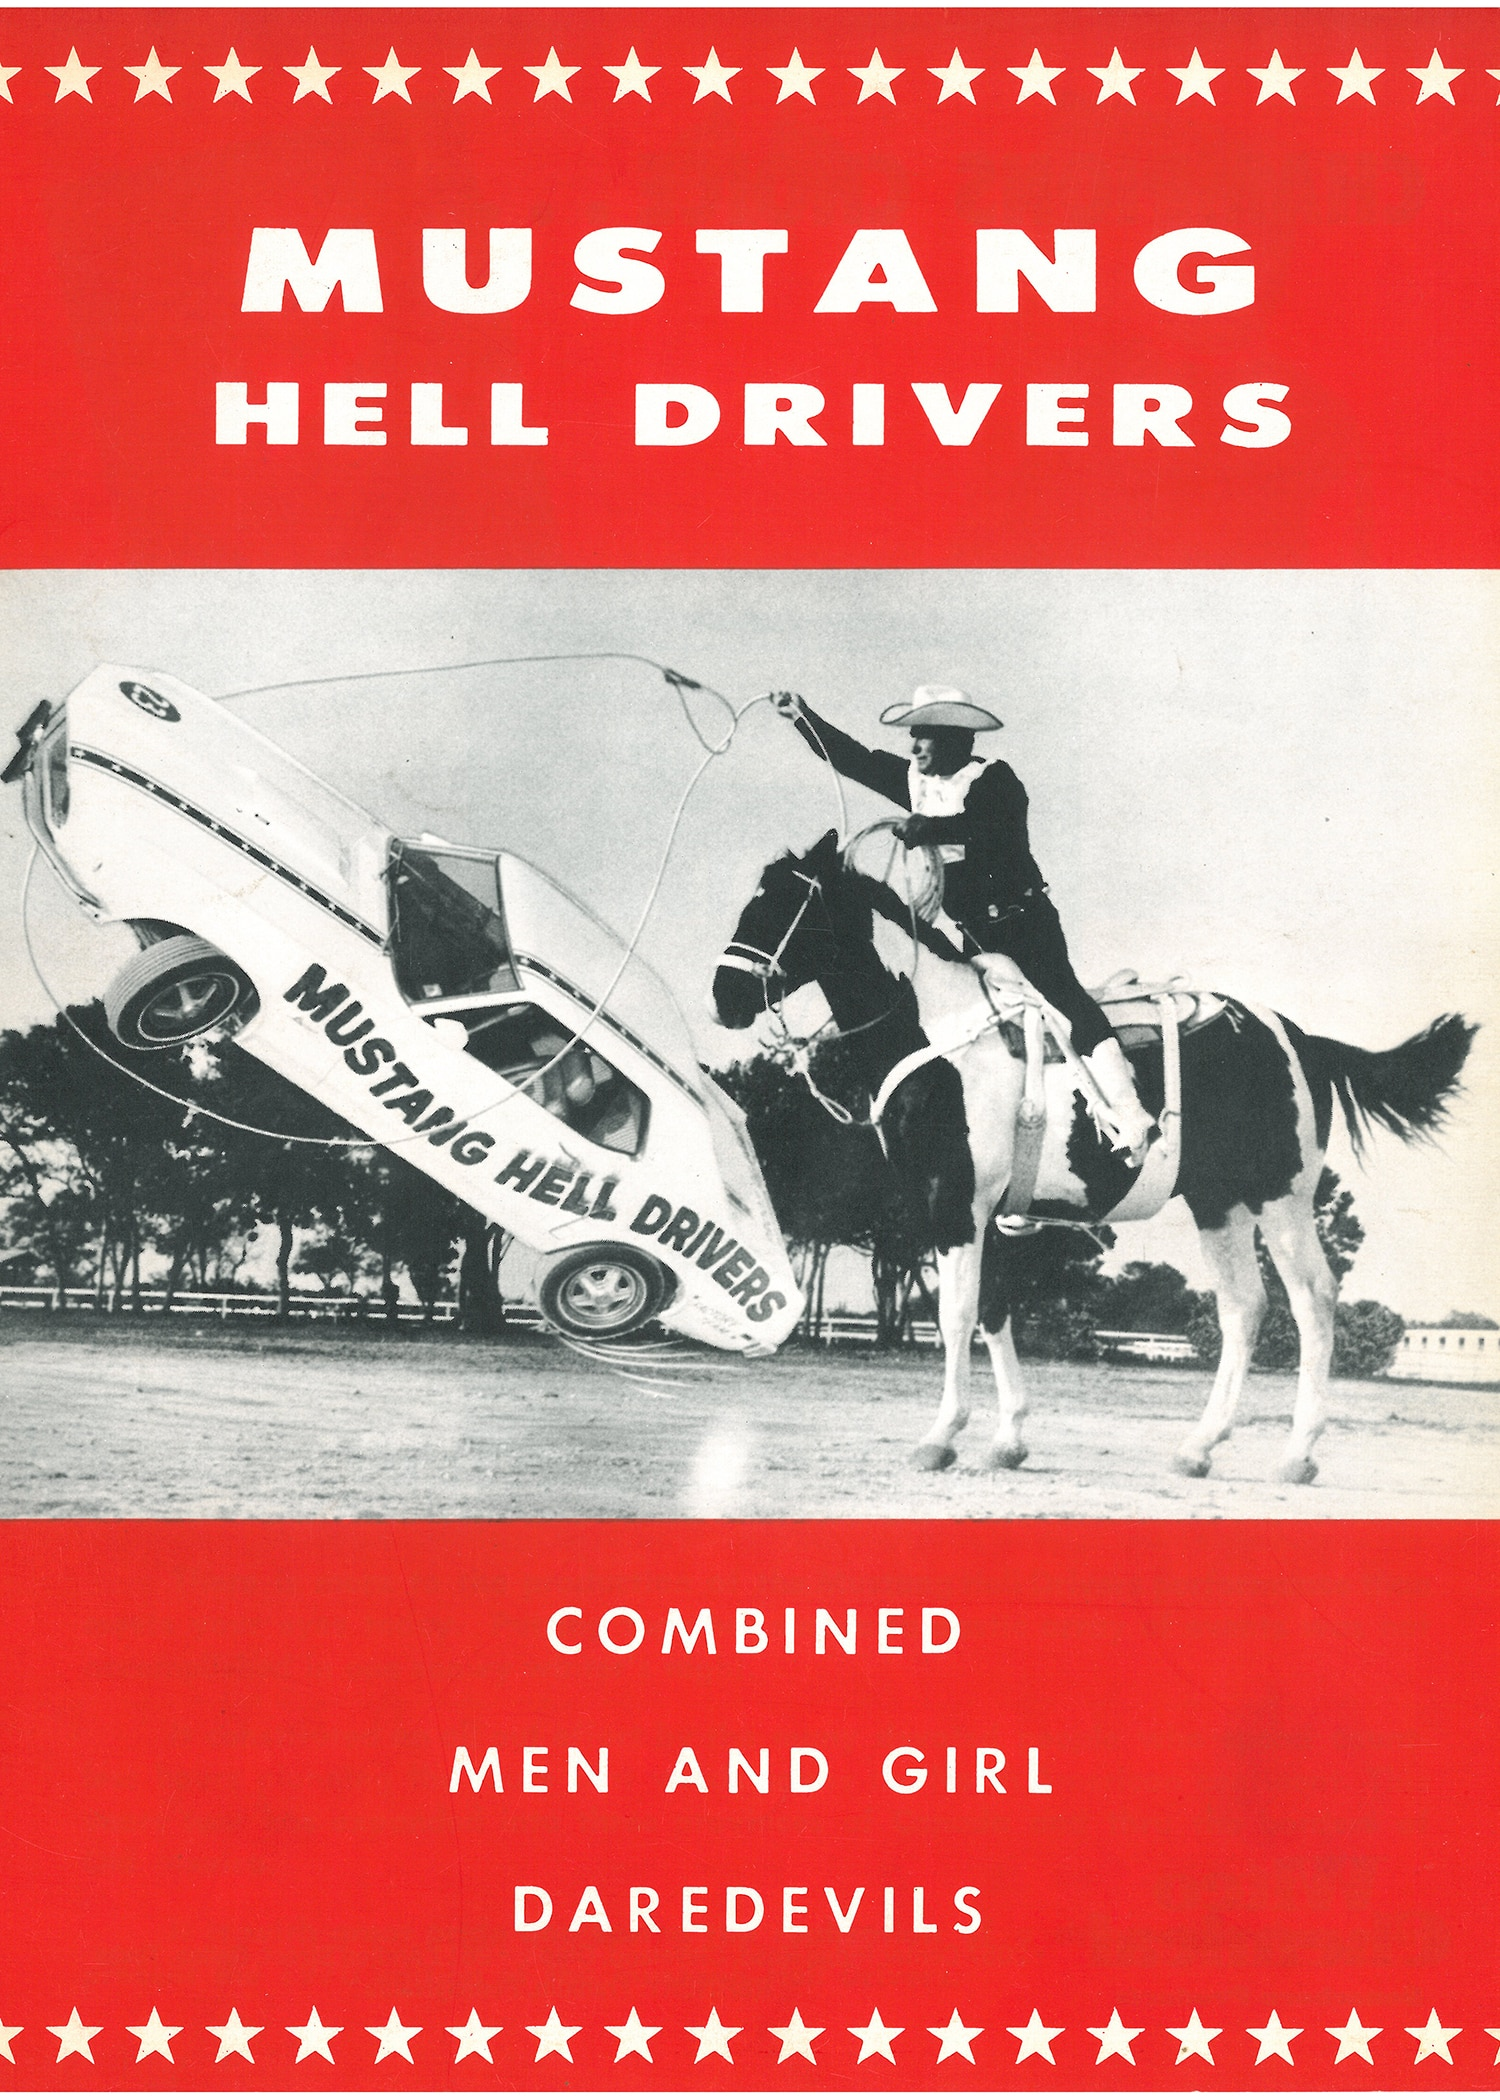 Ford Mustang Hell Drivers Poster Ad